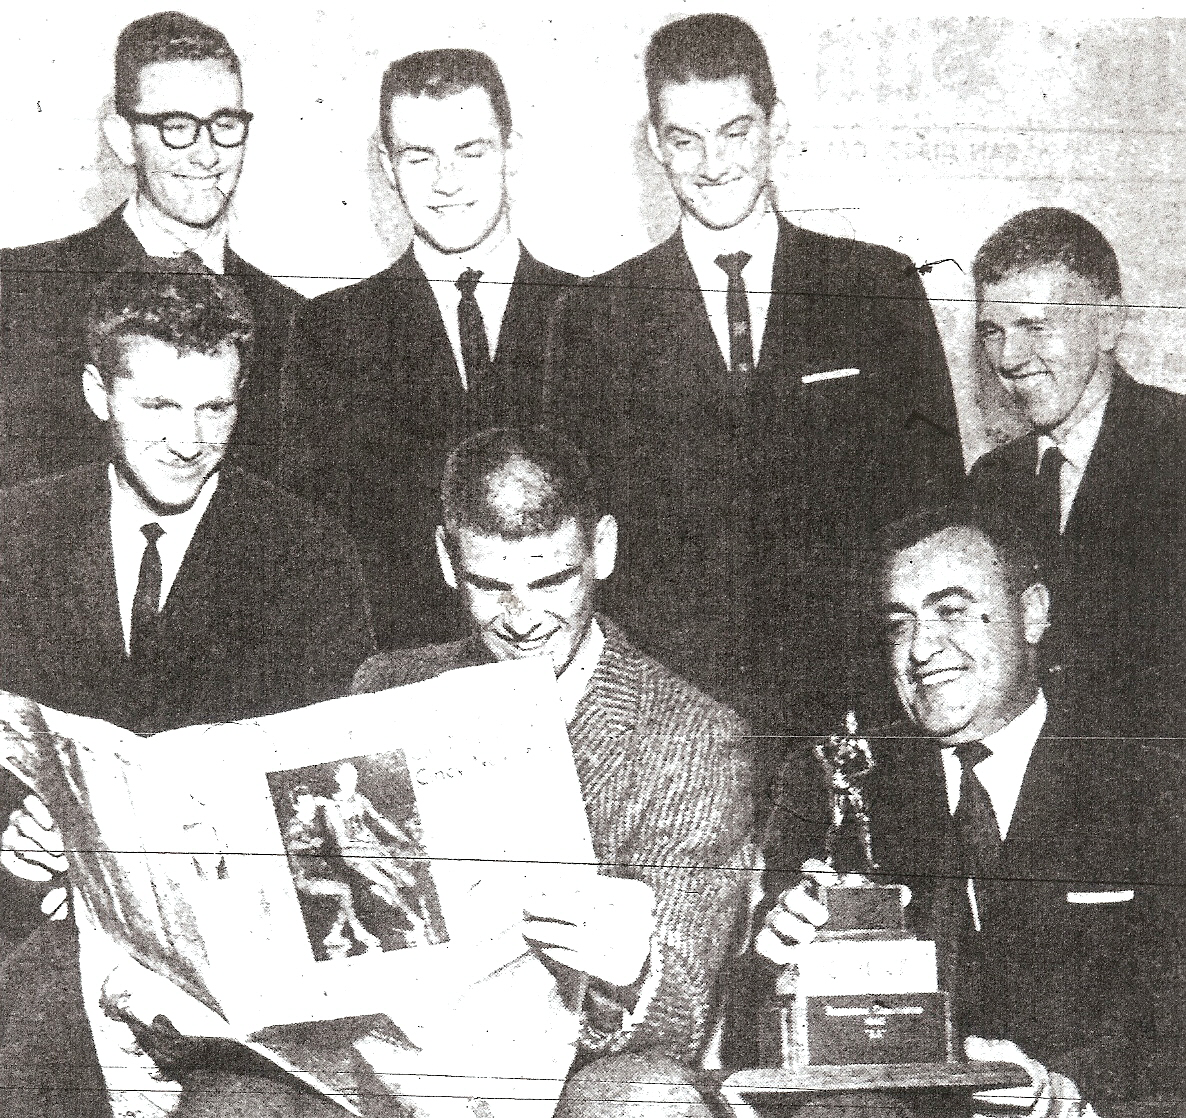 Winning Pointers, back row from left:  Larry Moore, Mike Dolphin, Dick Walden, Doug Lawrence.  Front: Winston Yetta, Don Sadas, reading newspaper account, and coach Hilbert Crosthwaite.